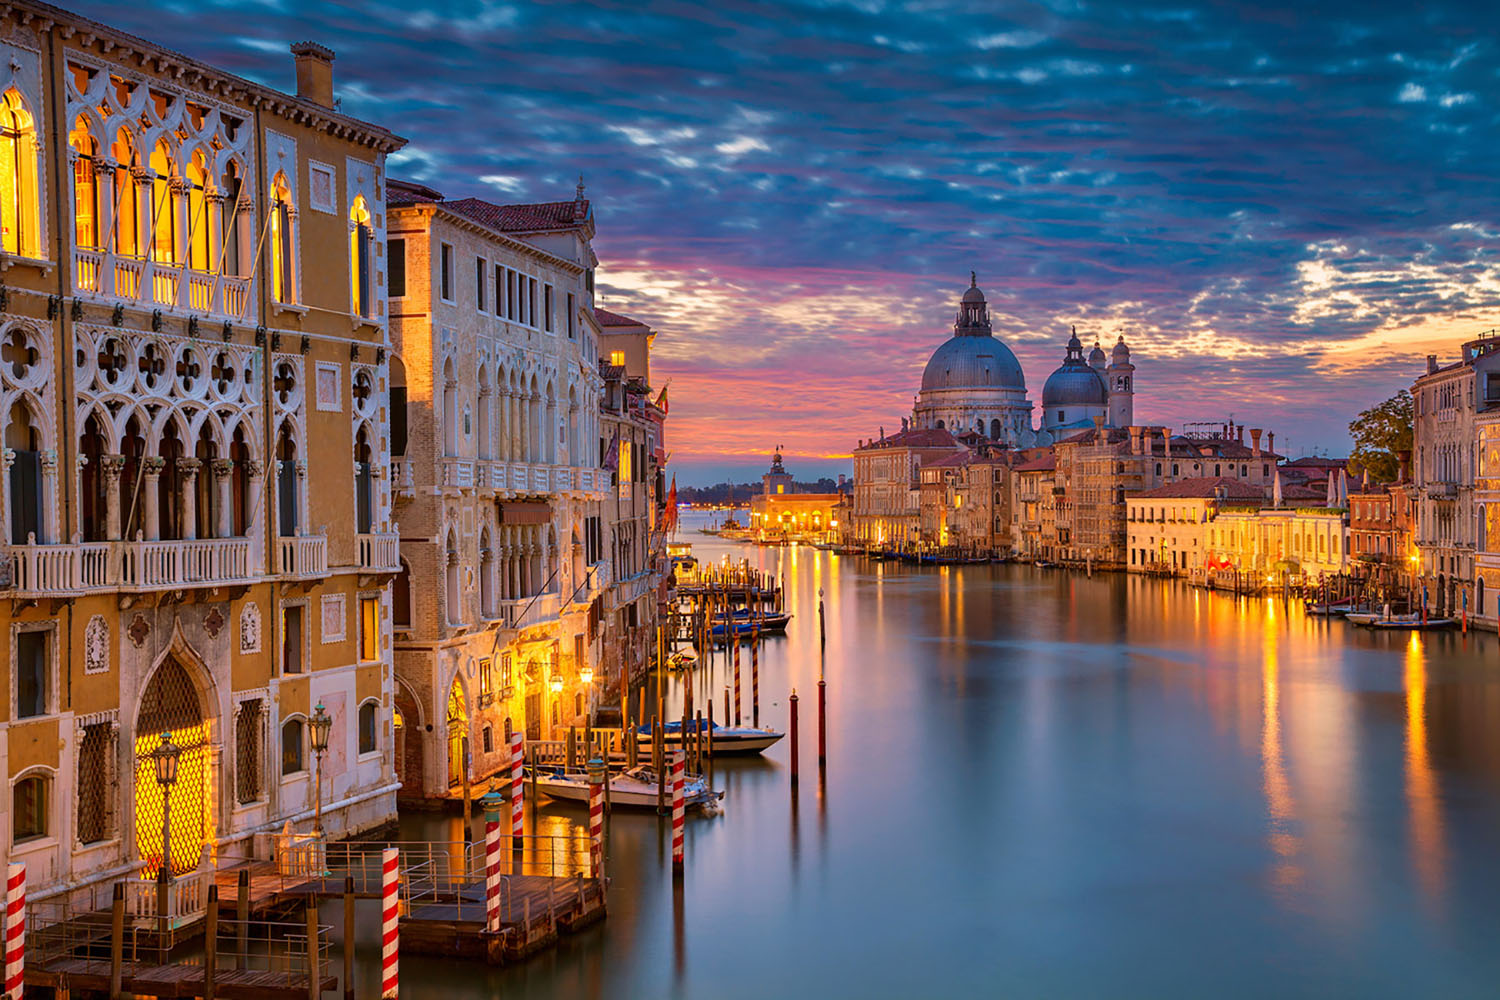 Venice's Grand Canal at dusk.